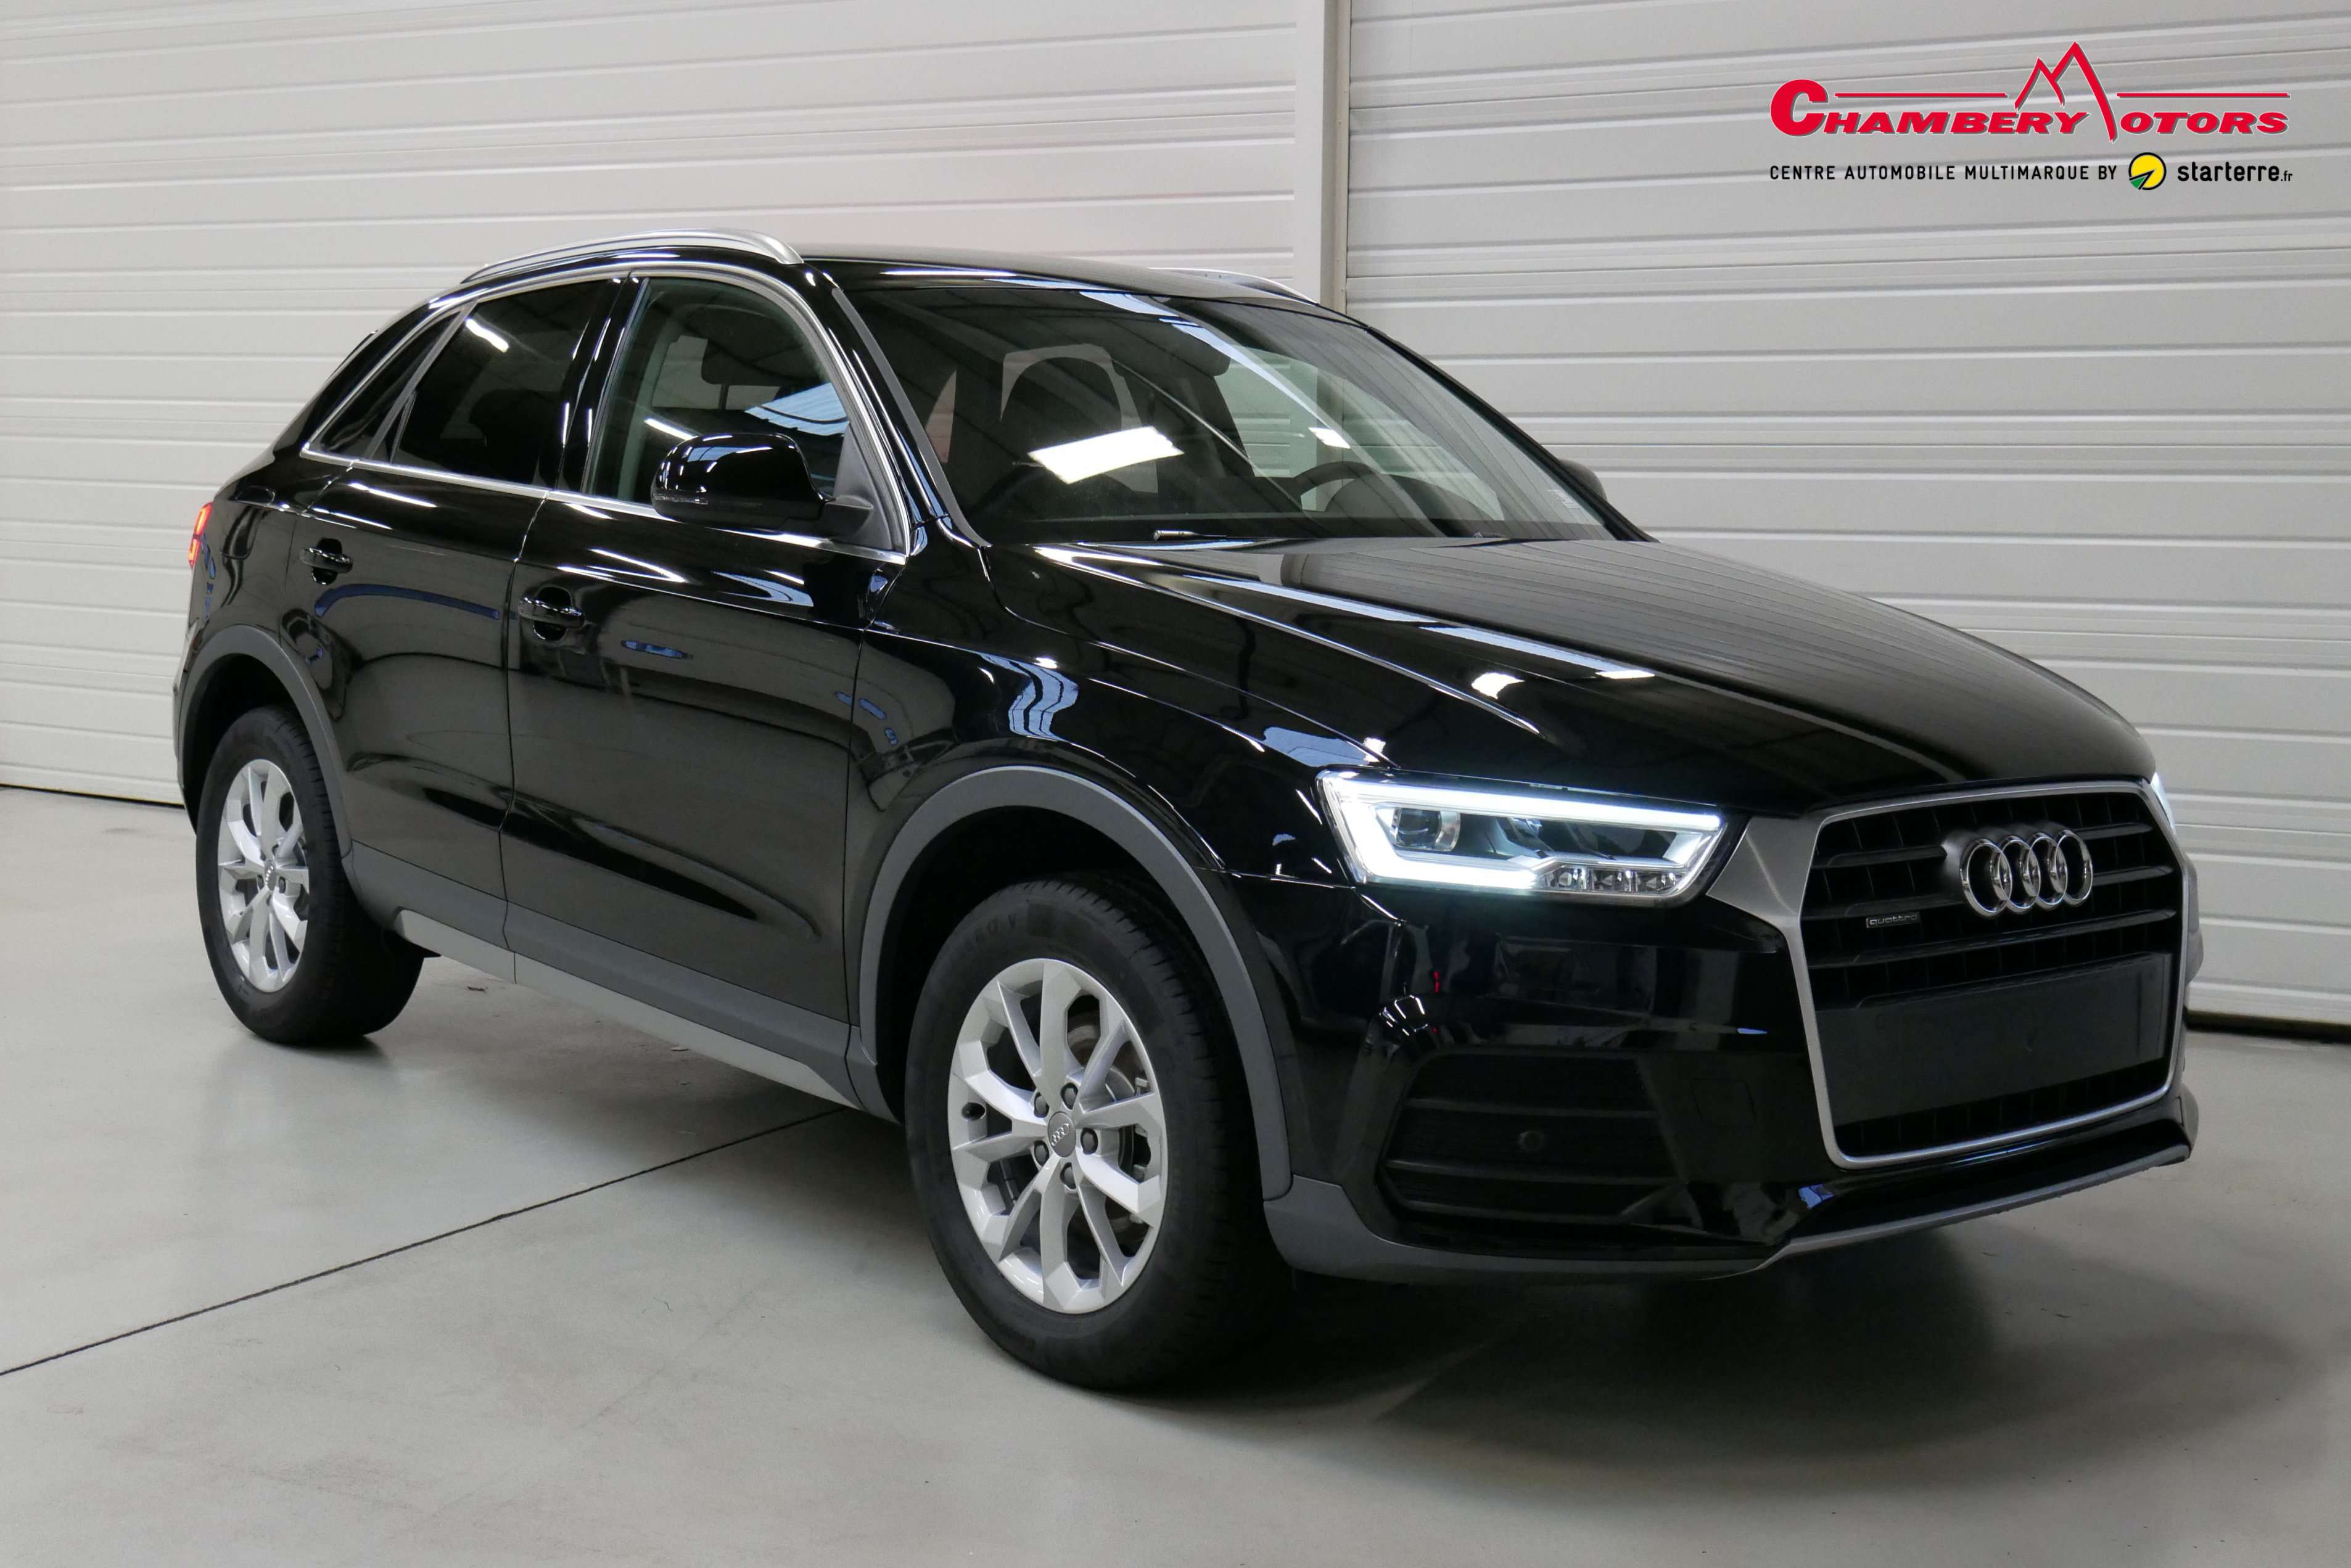 voiture audi q3 2 0 tdi 150 ch quattro ambiente s tronic 7 occasion diesel 2016 10 km. Black Bedroom Furniture Sets. Home Design Ideas